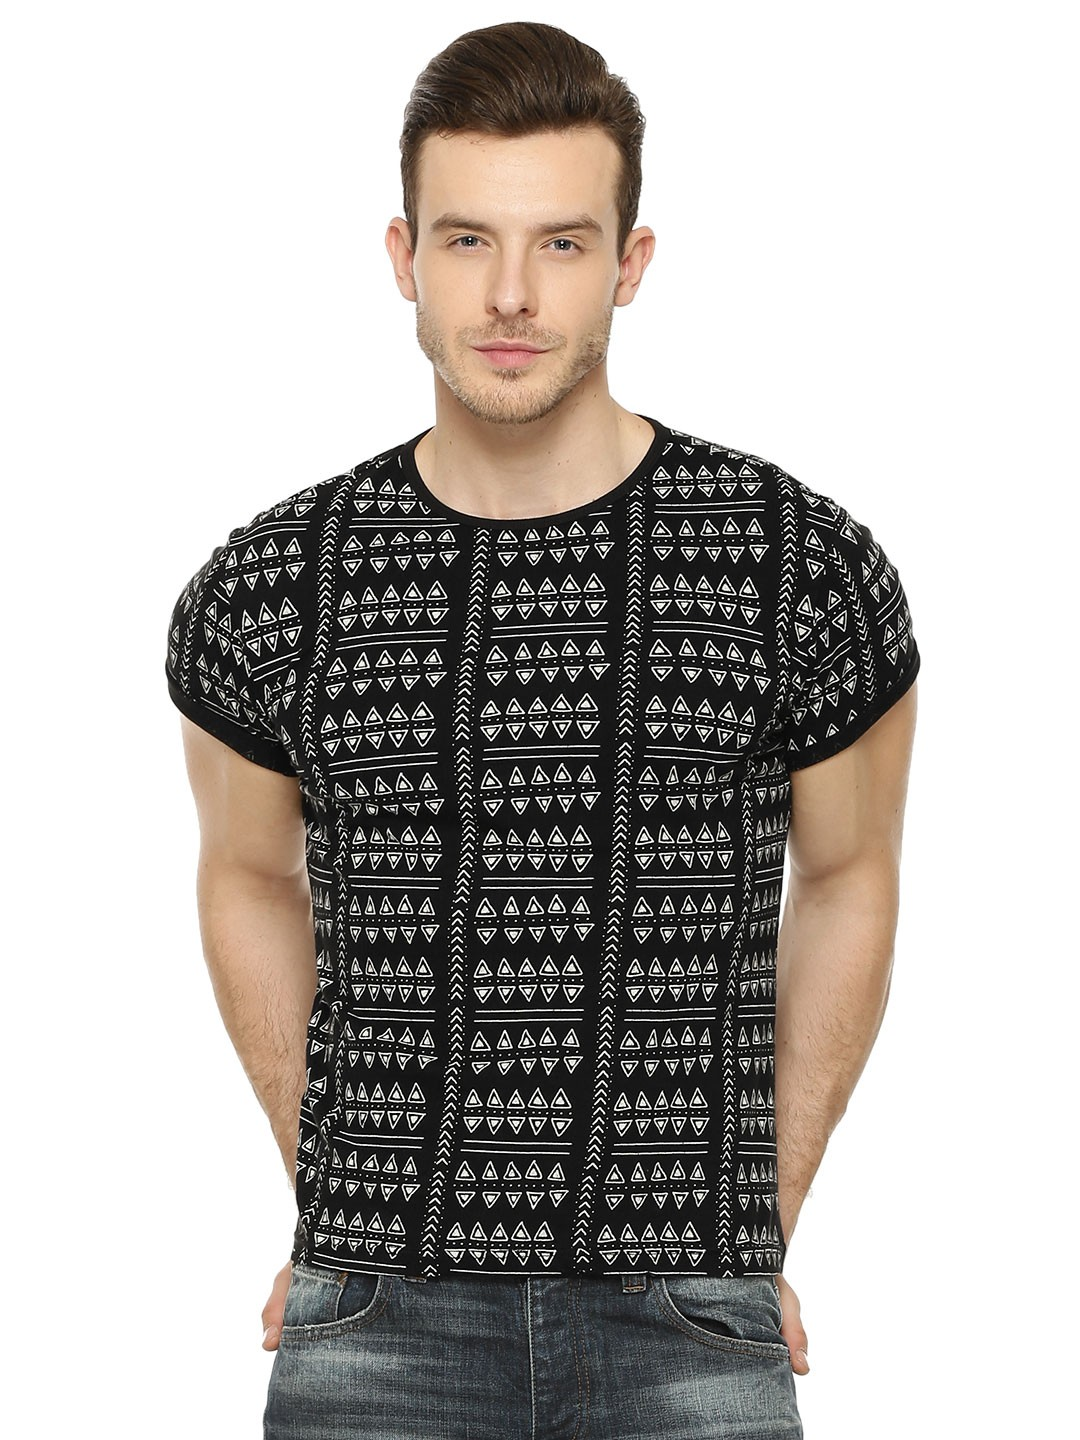 Black t shirt rolled up sleeves - Zobello Tribal Printed T Shirt With Roll Up Sleeves